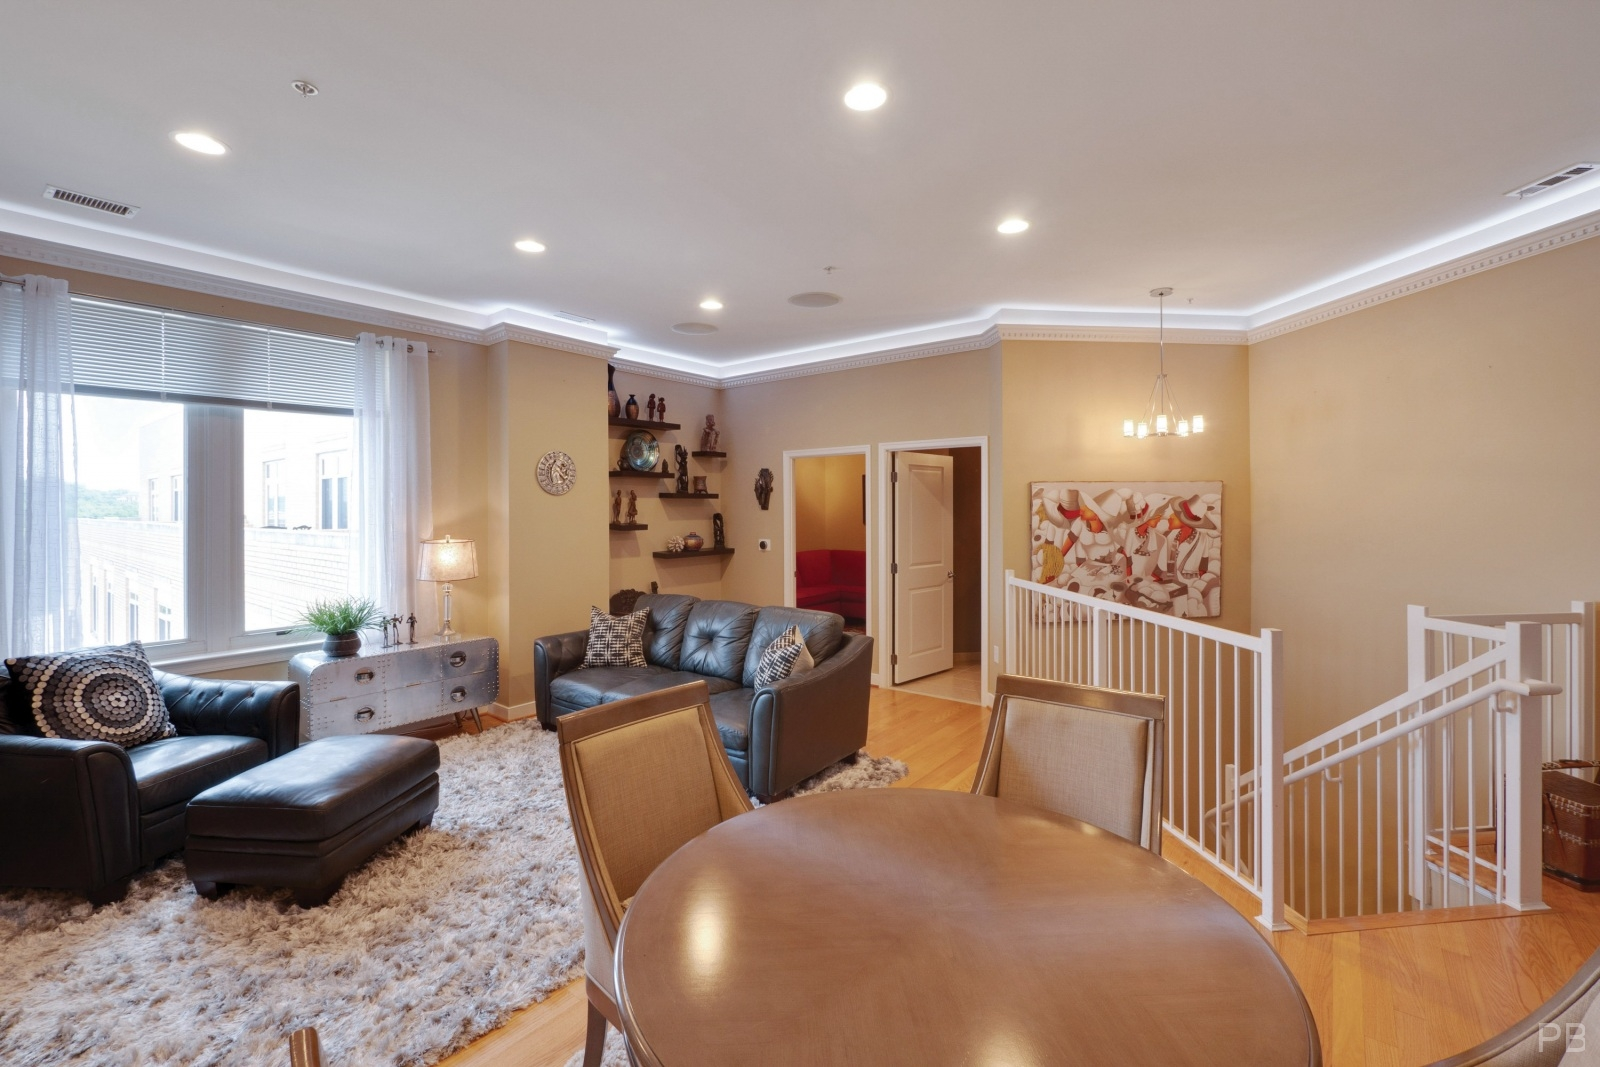 Living room with recessed lights and mood lighting